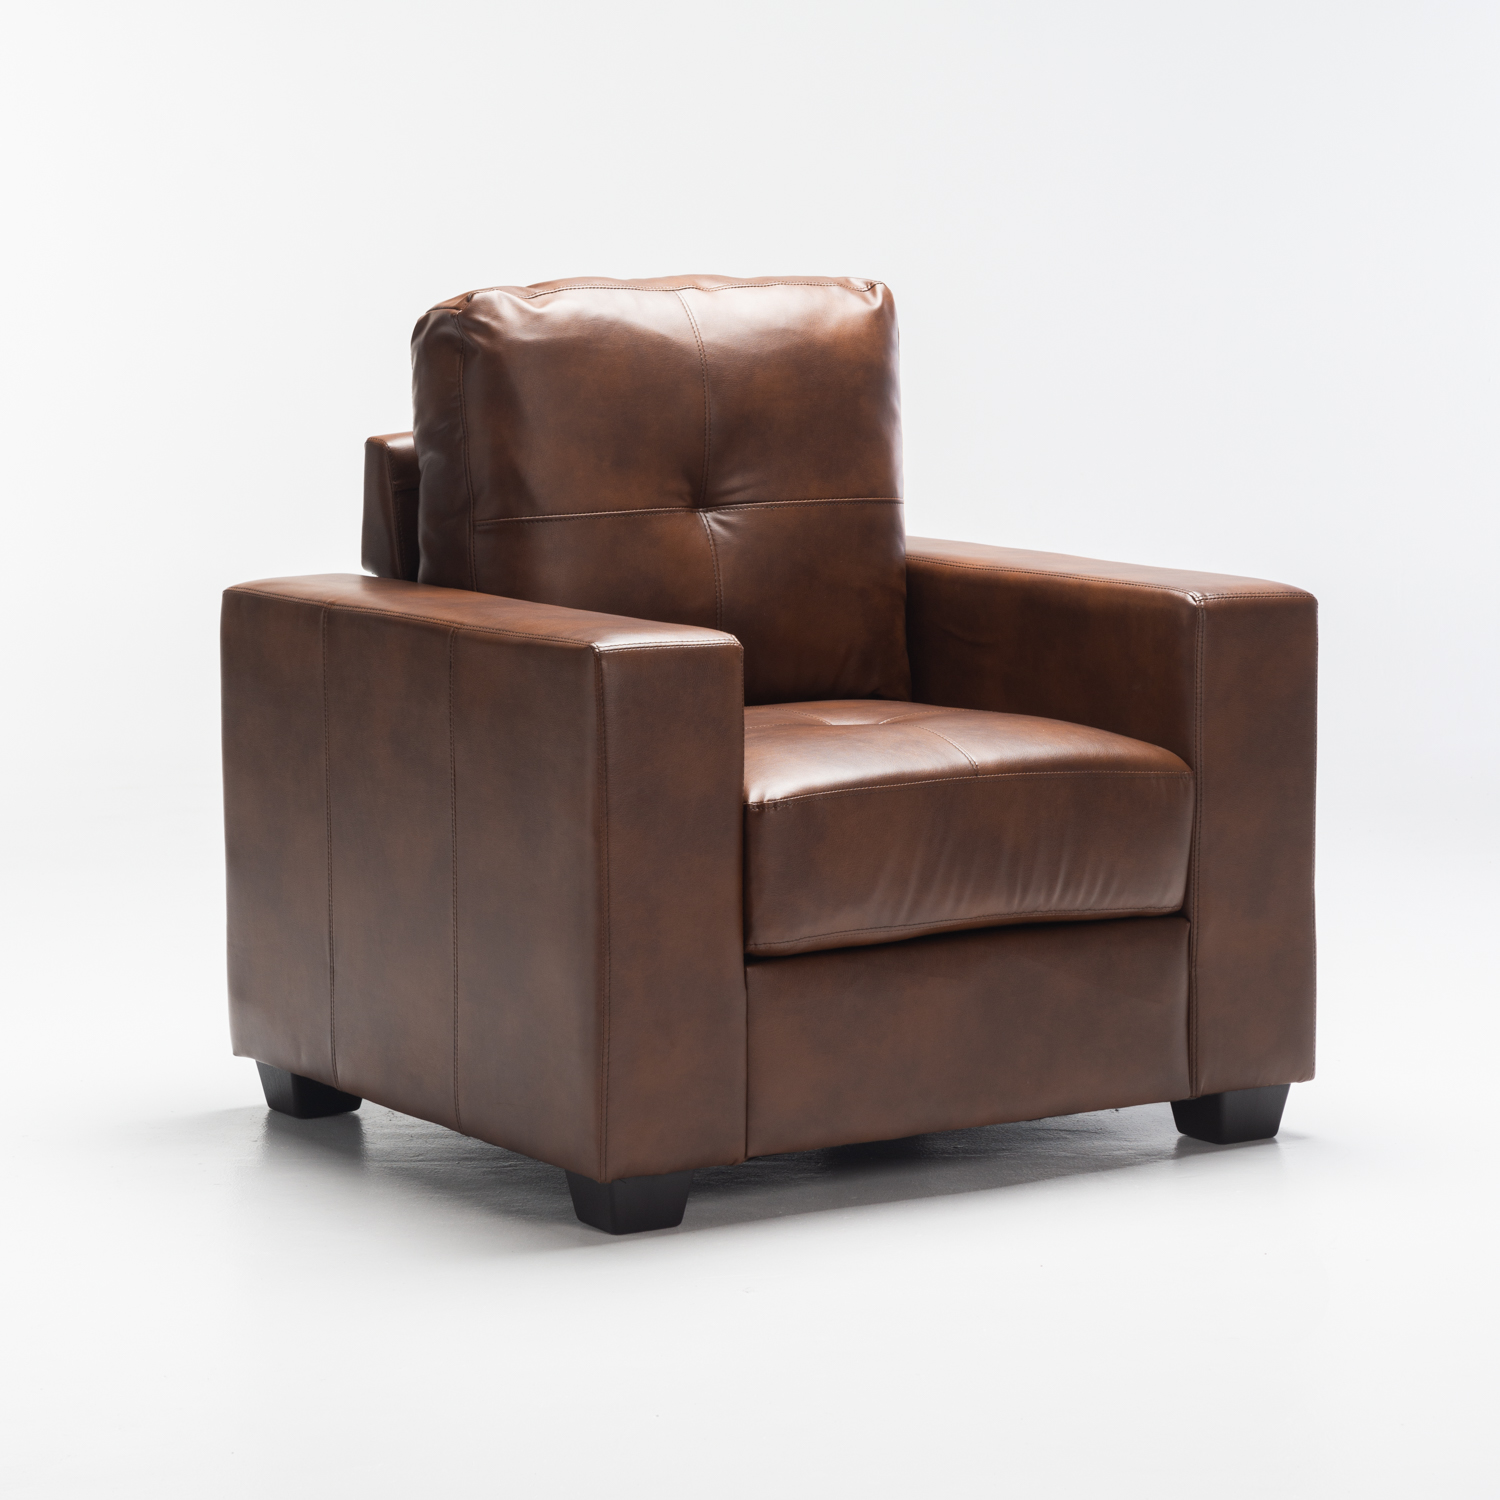 ASTRA LEATHER TOUCH ARMCHAIR - WALNUT